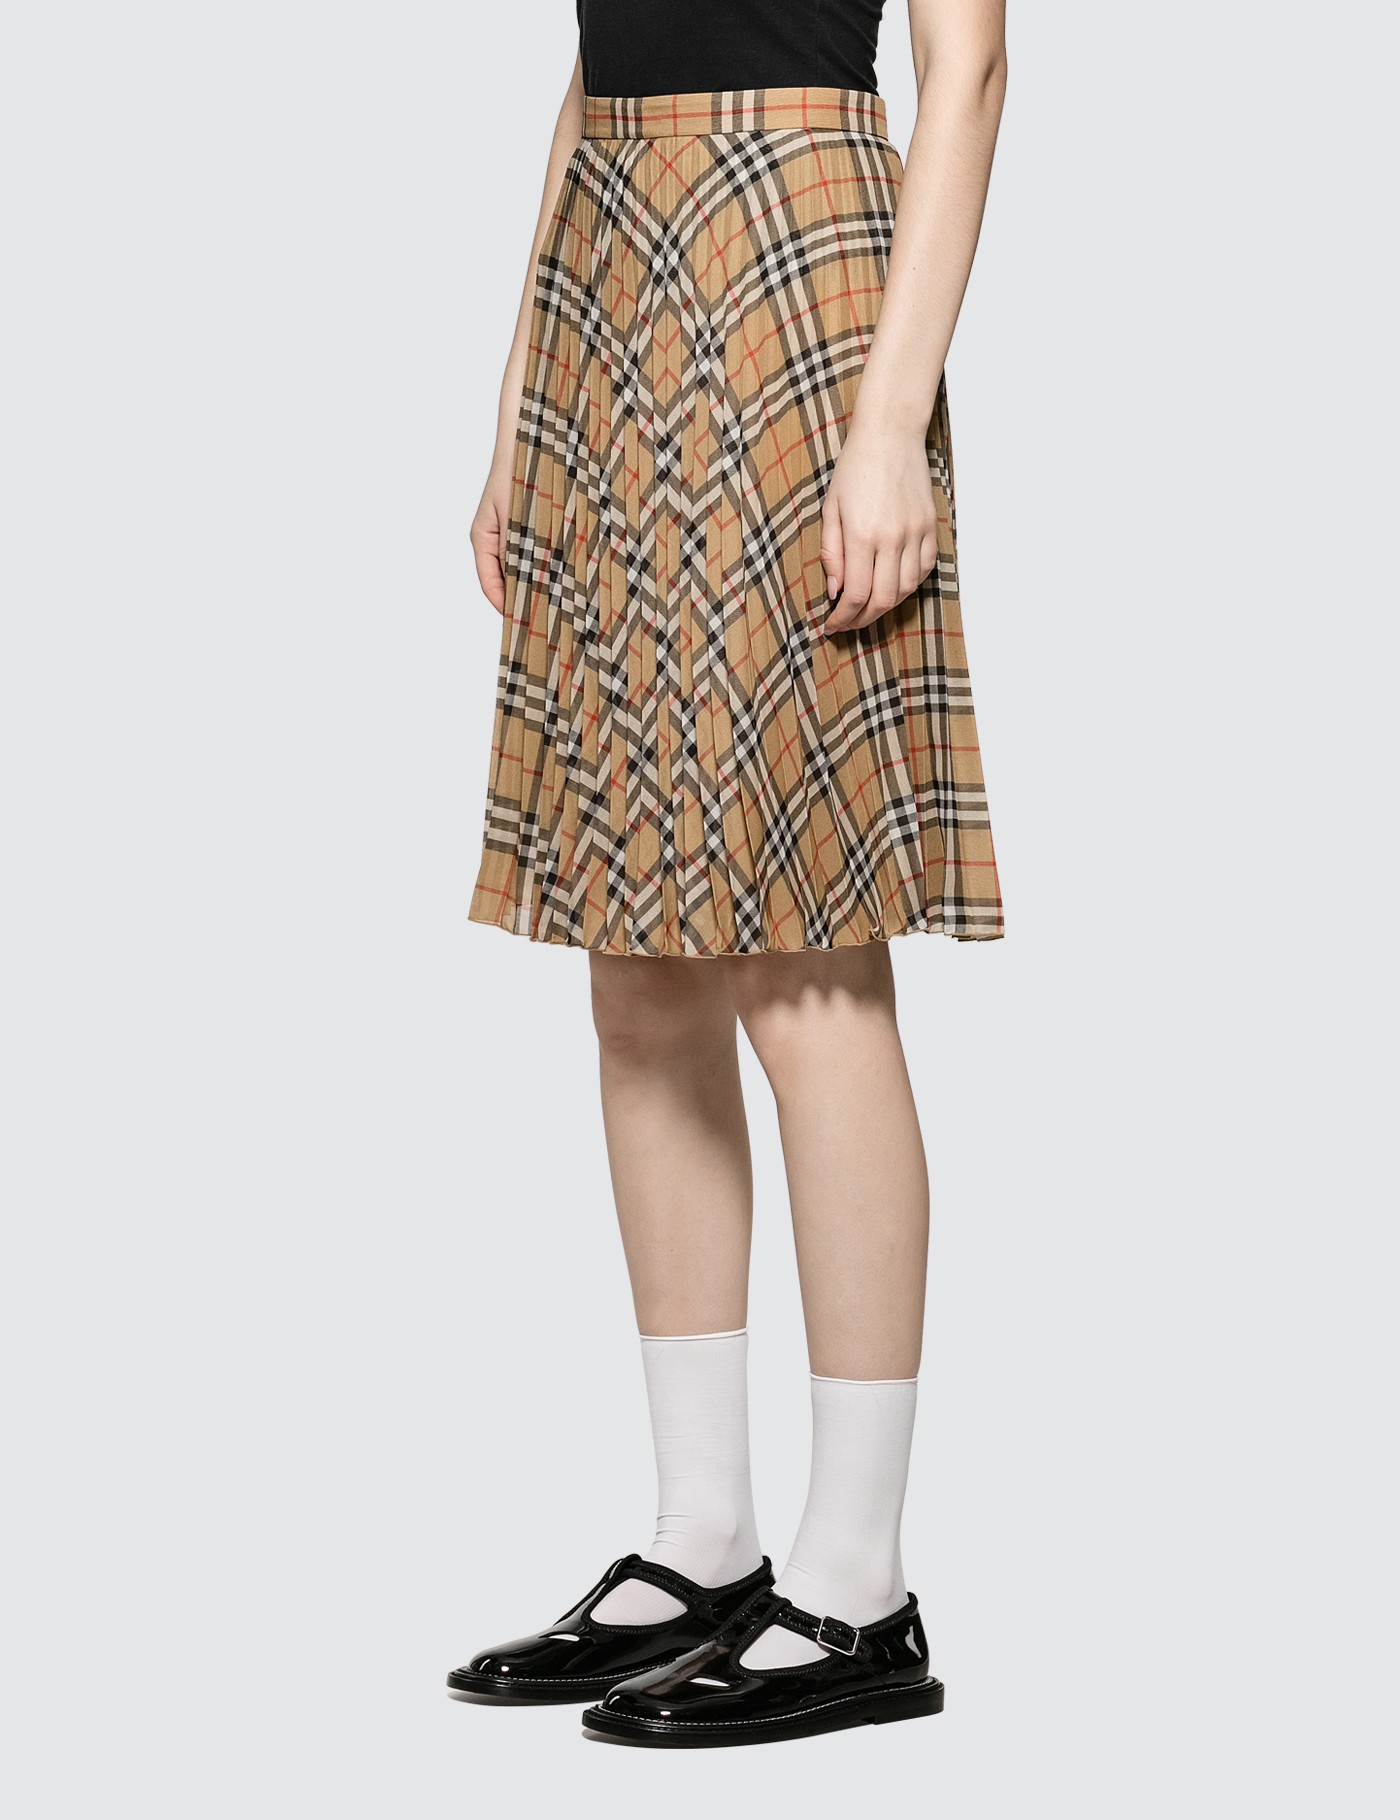 d8994bbd88 Buy Original Burberry Vintage Check Pleated Skirt at Indonesia ...